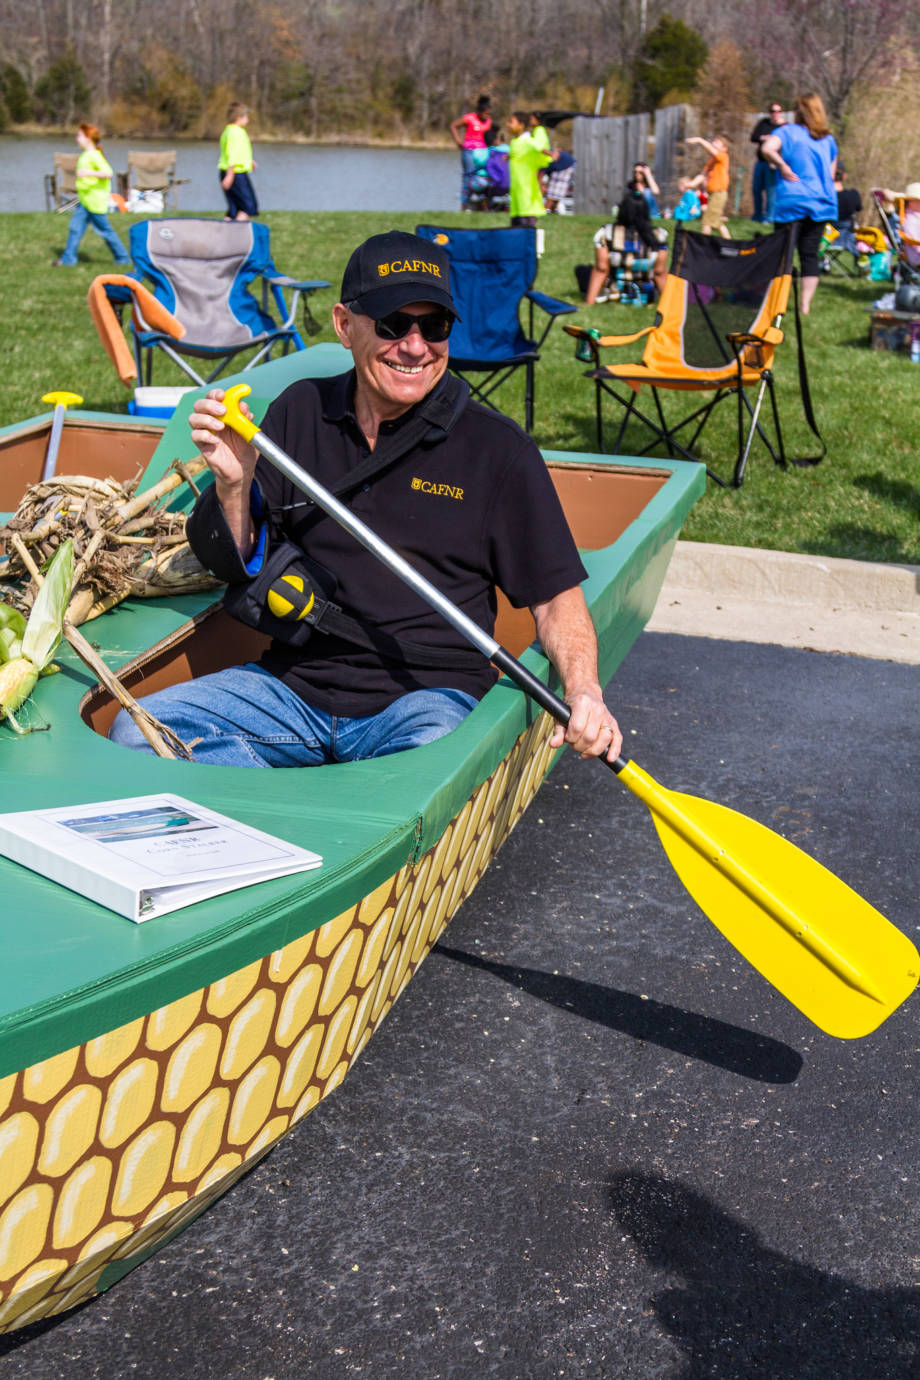 CAFNR Dean Tom Payne shows off CAFNR's submission, a corn-themed vessel, in the 2014 edition of the Float Your Boat for the Food Bank event at Bass Pro Shops Lake. Photo by Aaron Duke.